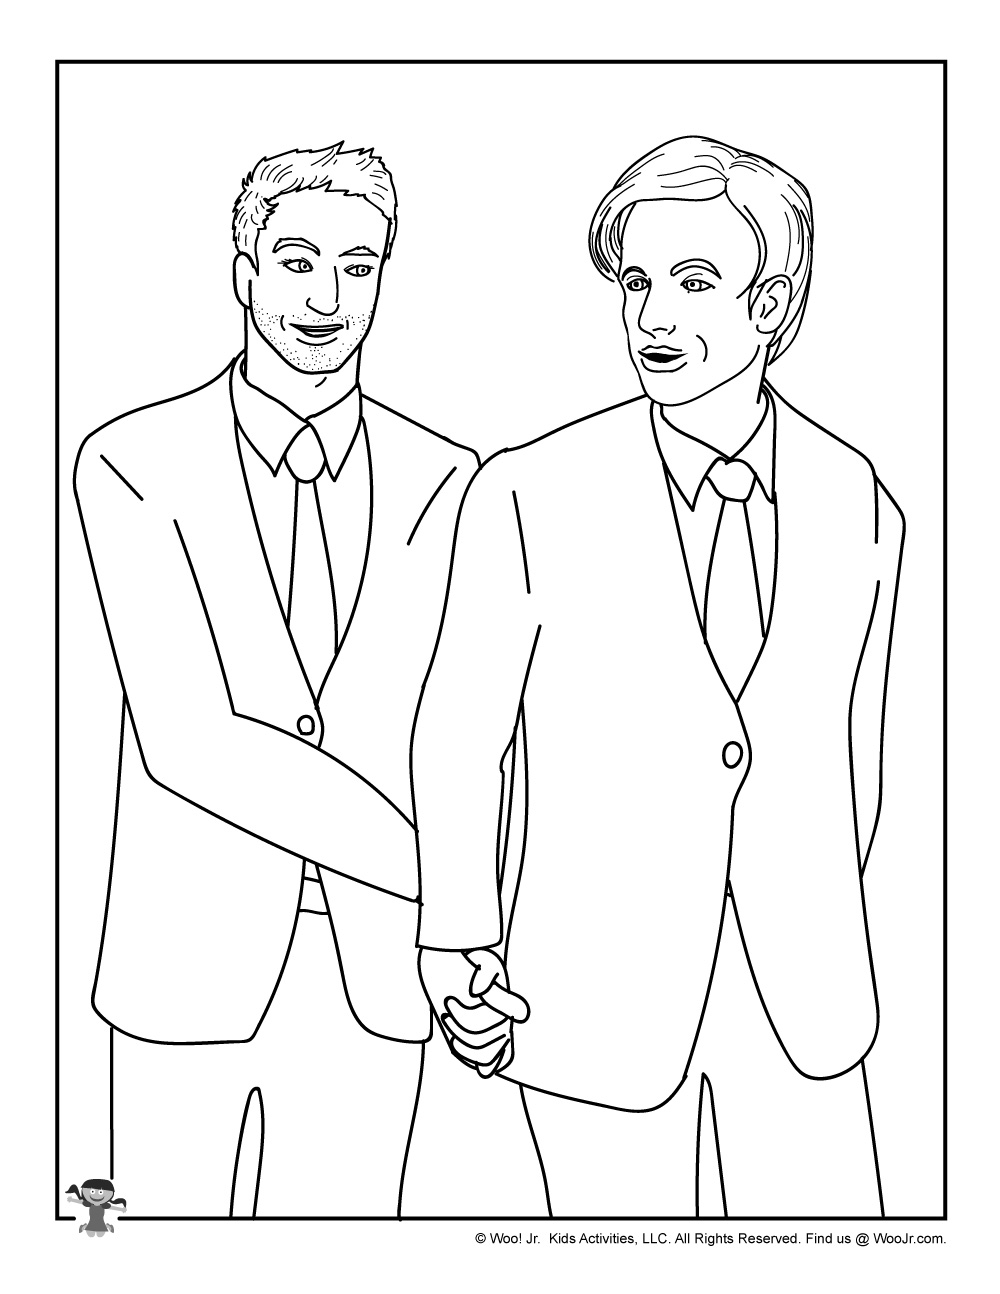 Gay Wedding Coloring Page For Kids Woo Jr Kids Activities